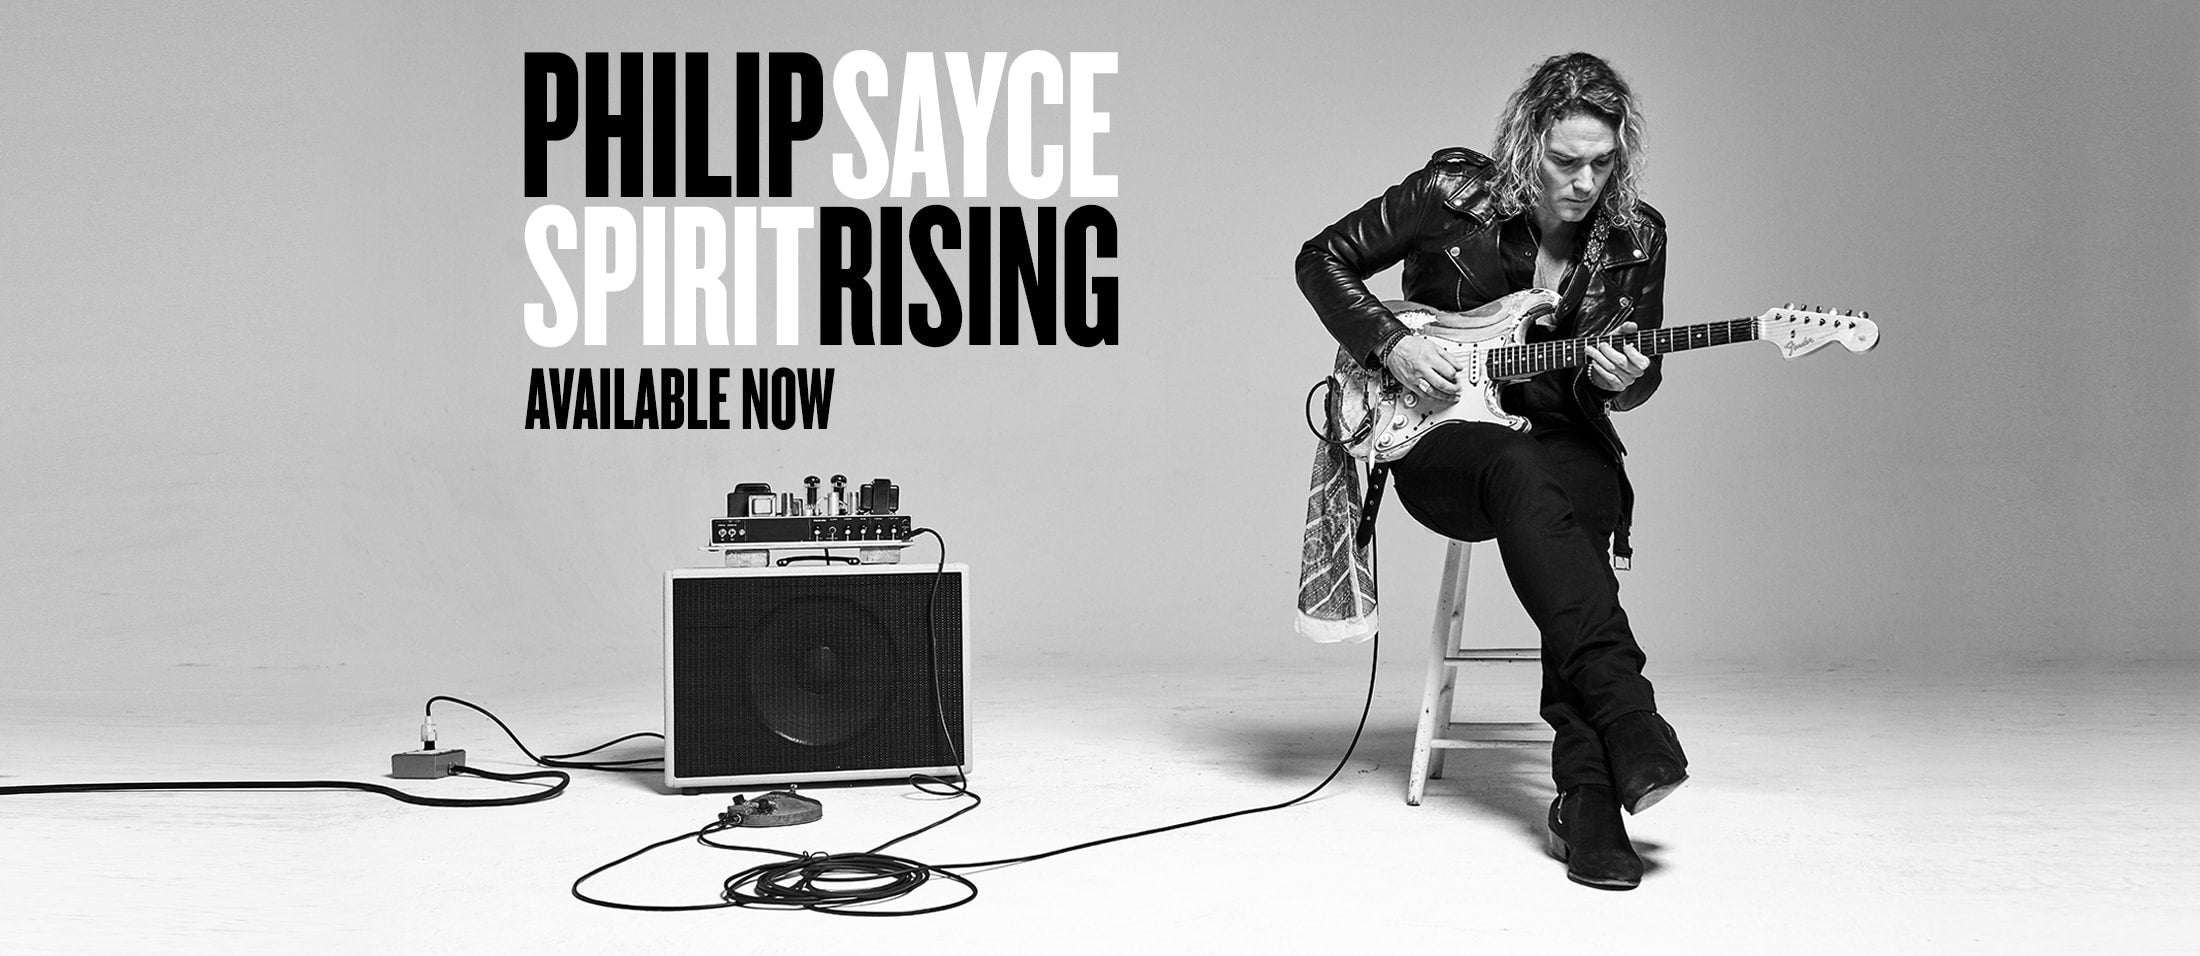 philip sayce - spririt rising available now